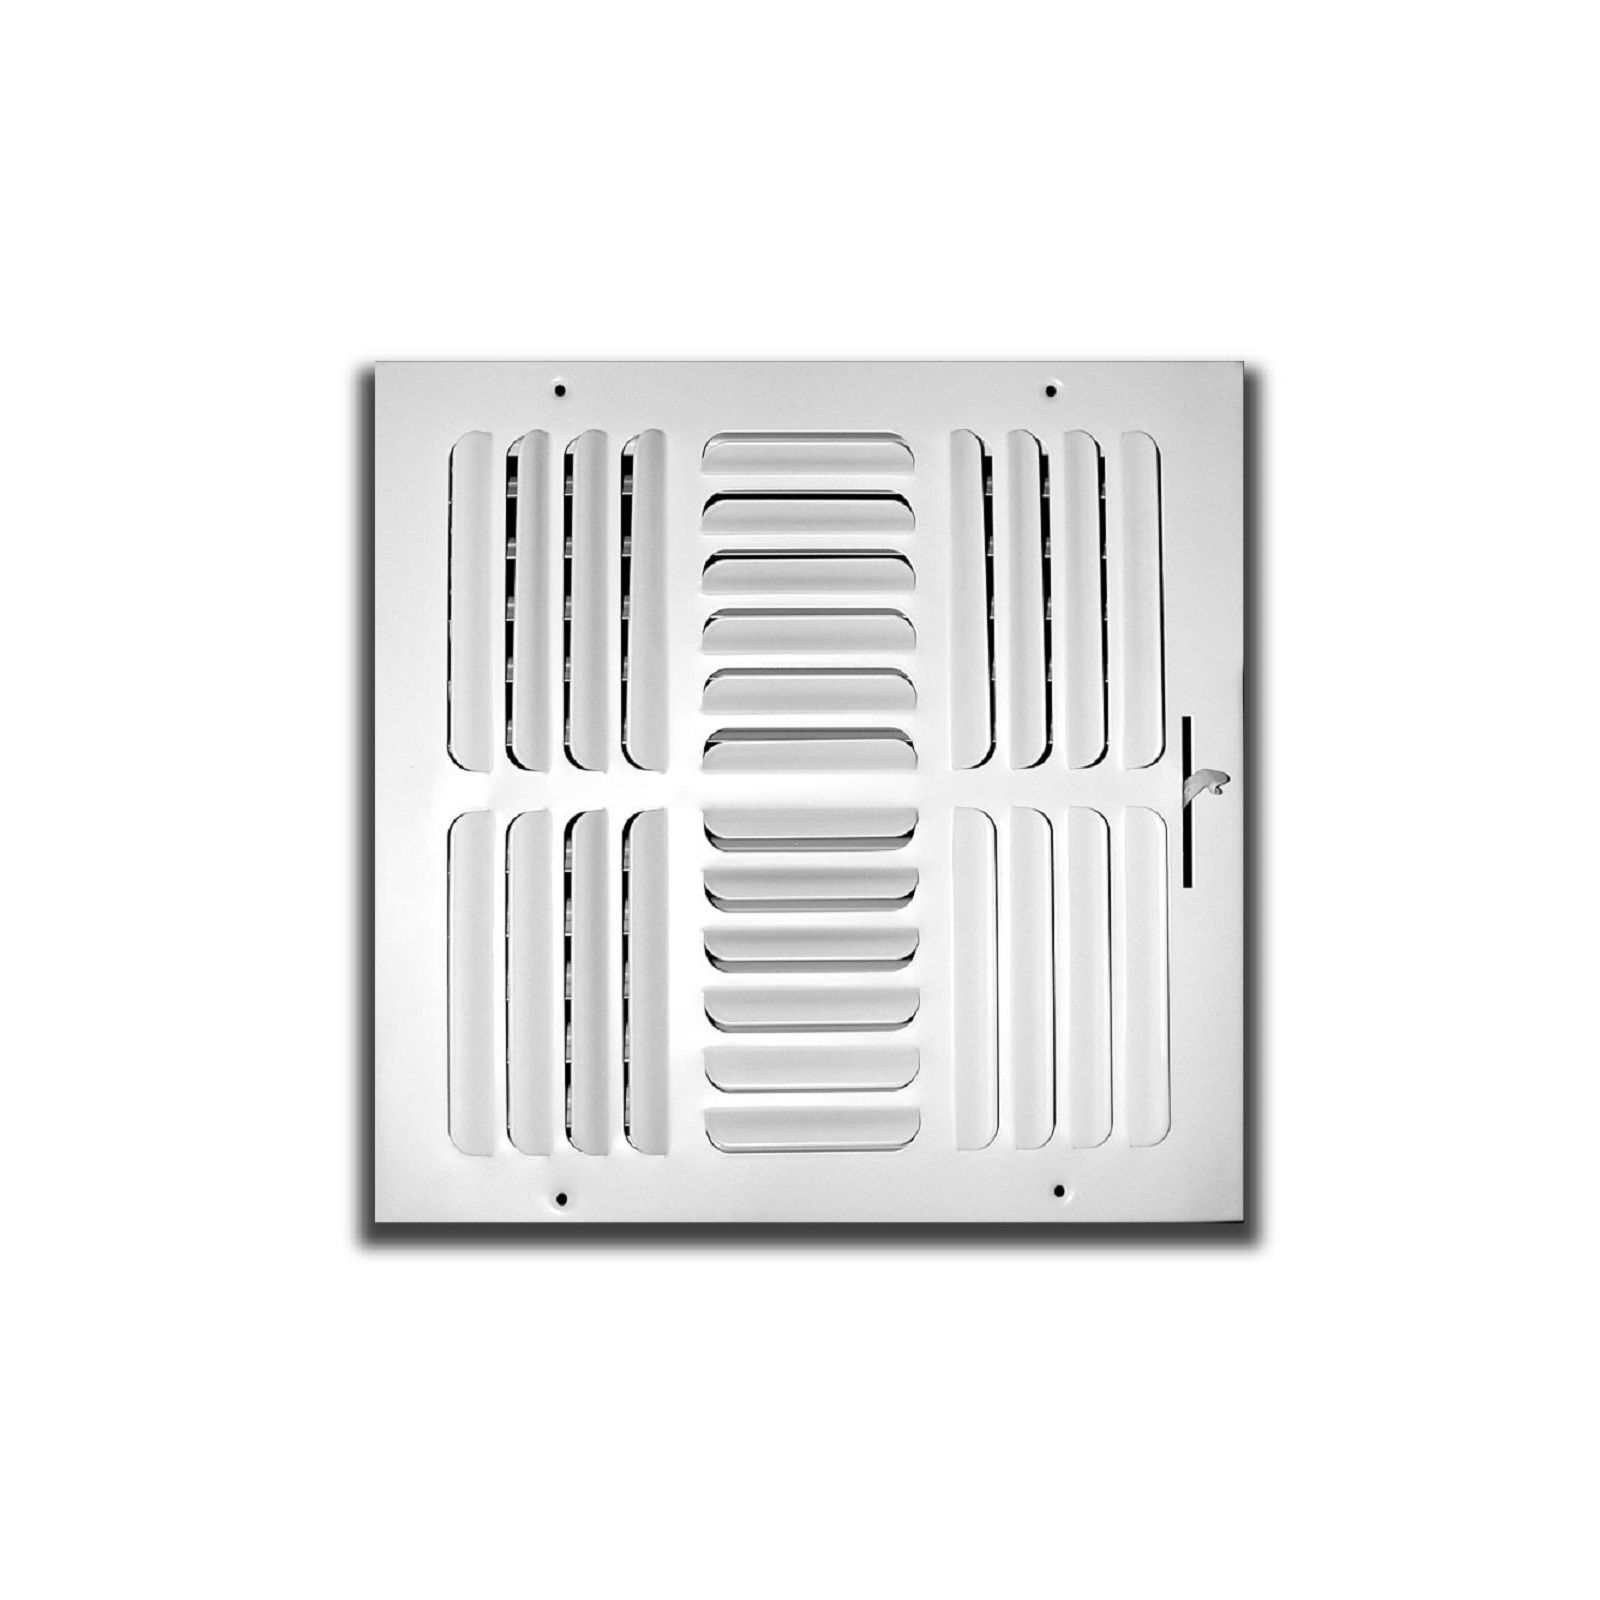 "TRUaire 404M 14X14 - Fixed Curved Blade Wall/Ceiling Register With Multi Shutter Damper, 4-Way, White, 14"" X 14"""